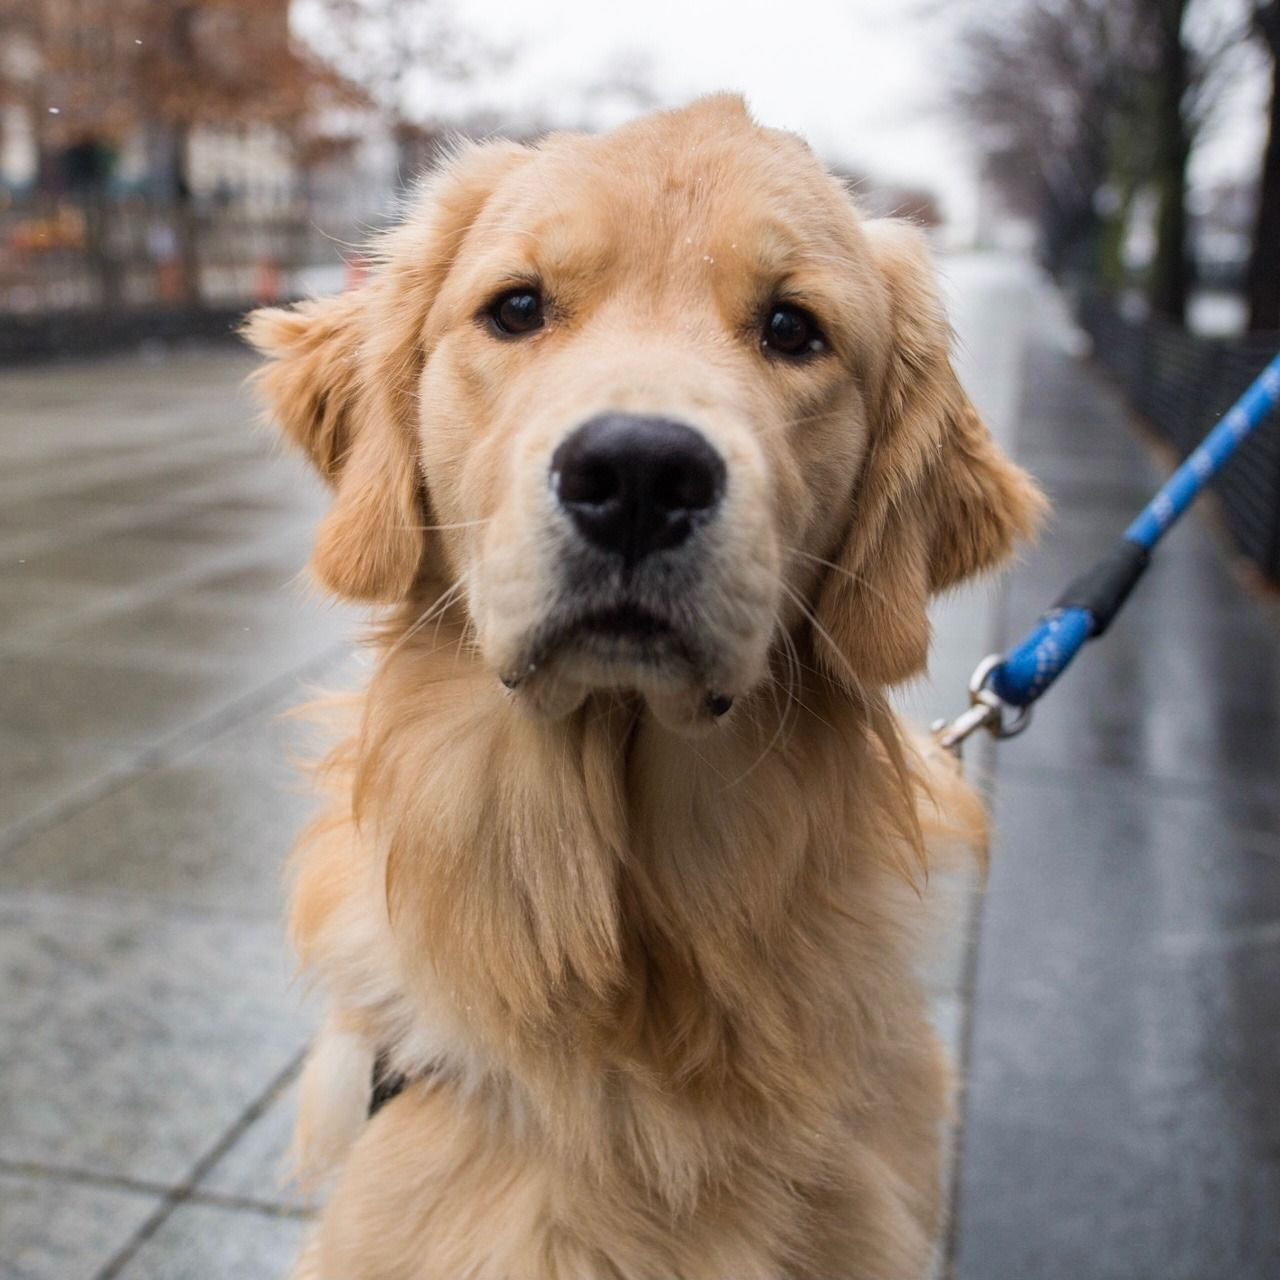 Finnley Golden Retriever 9 M O Little West 3 Pl New York